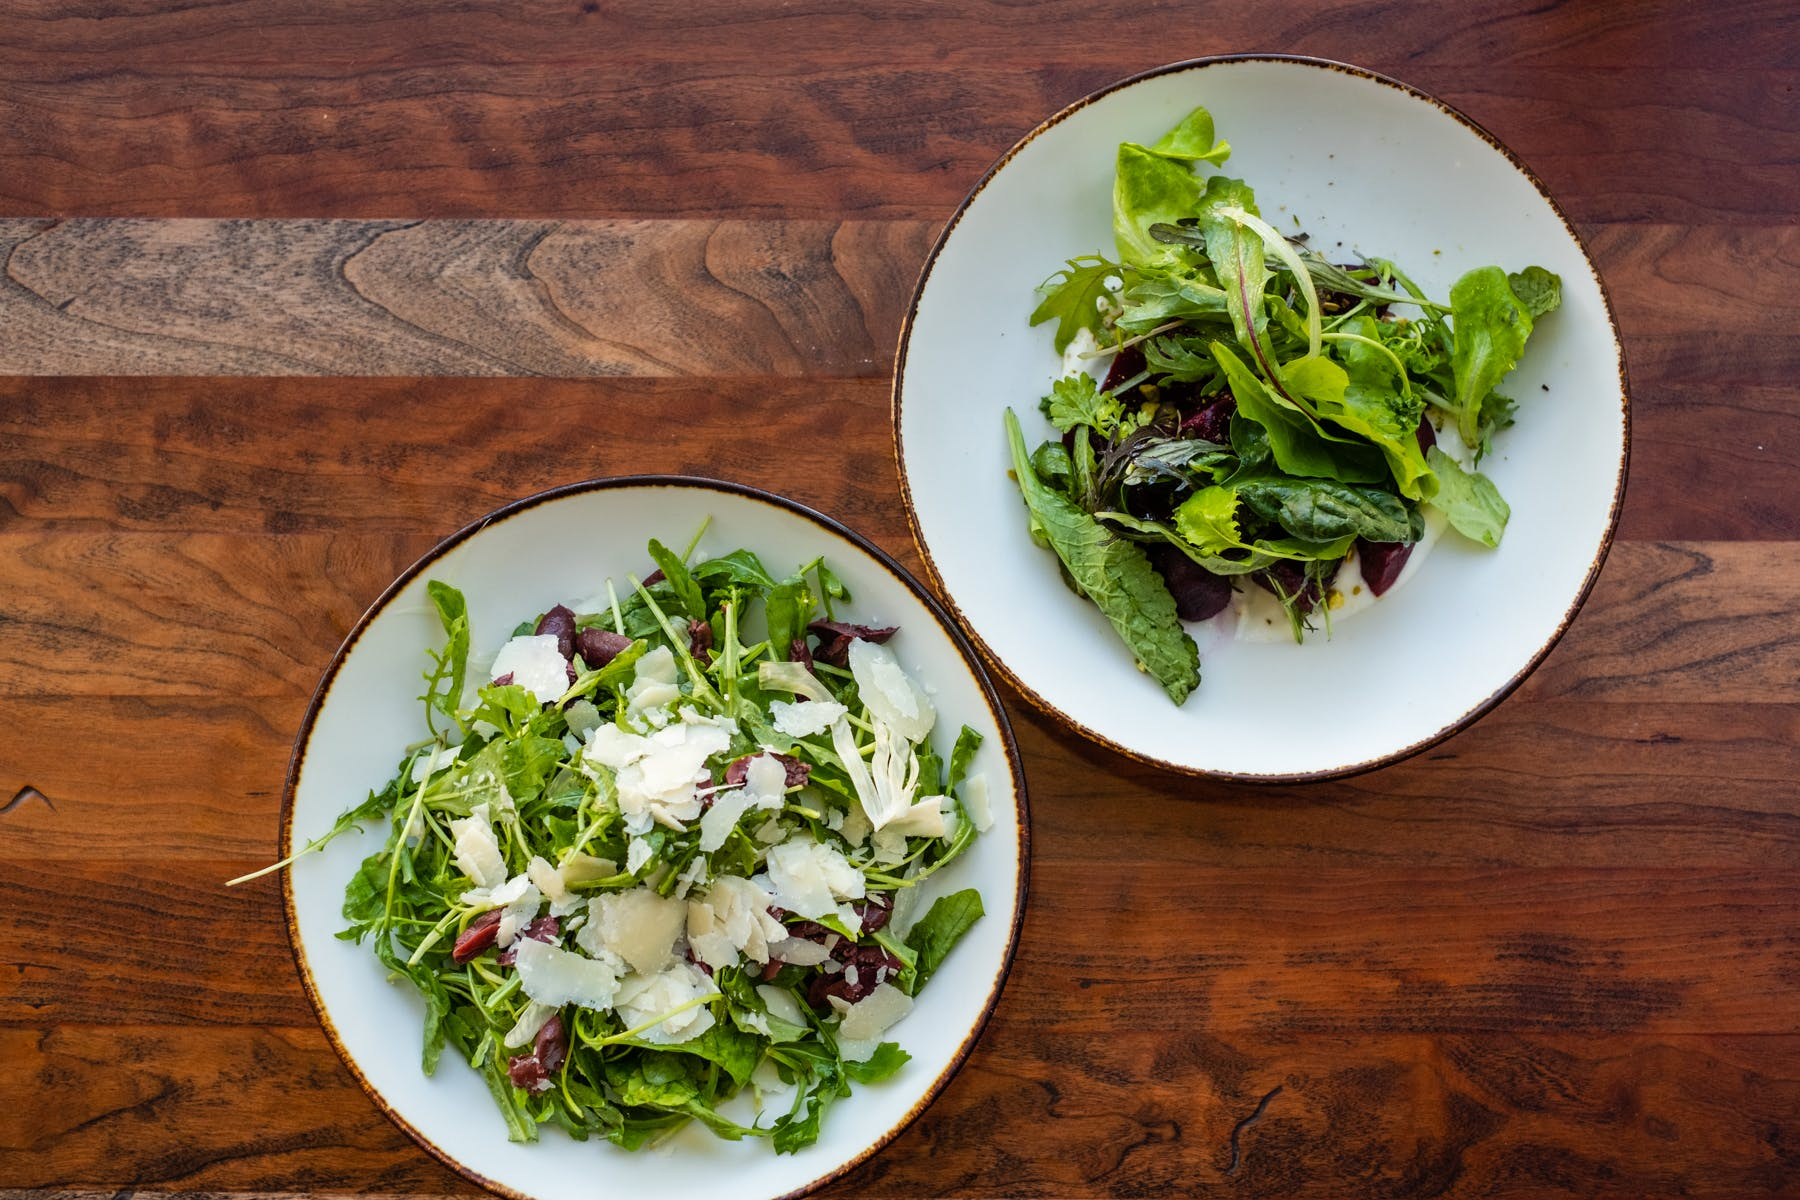 a bowl of salad on a plate on a wooden table